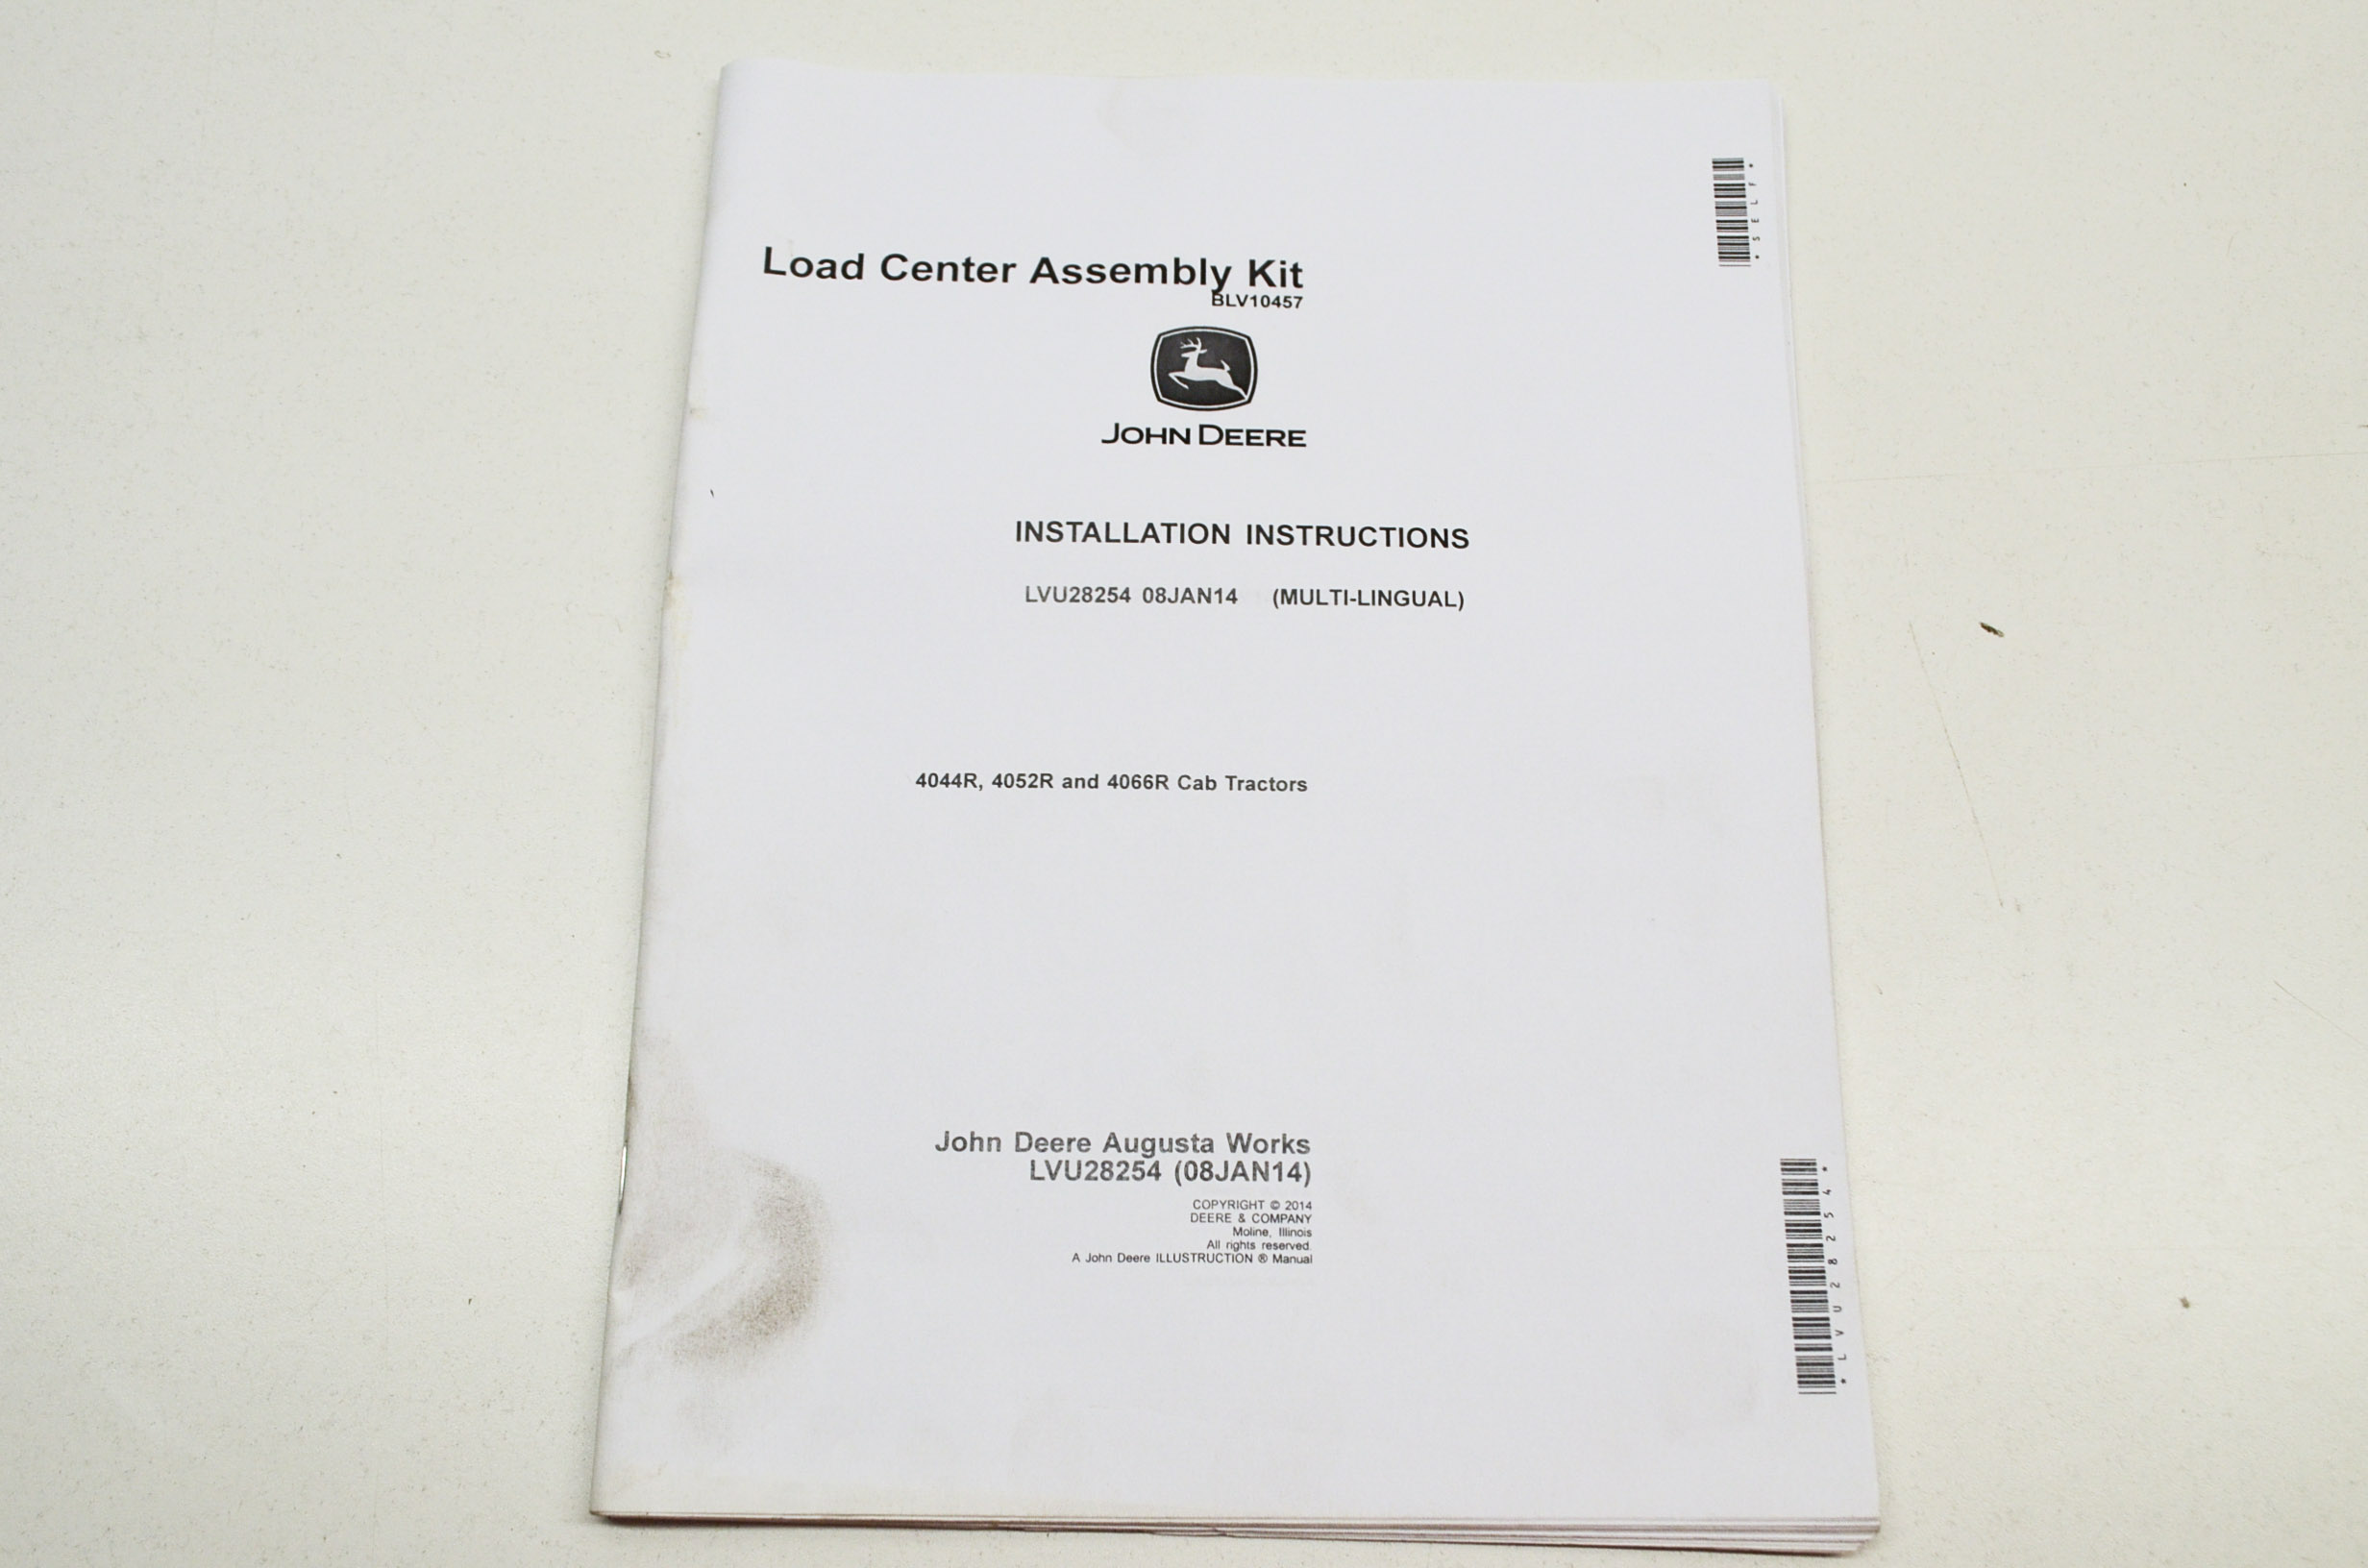 oem john deere installation instructions load center assembly kit